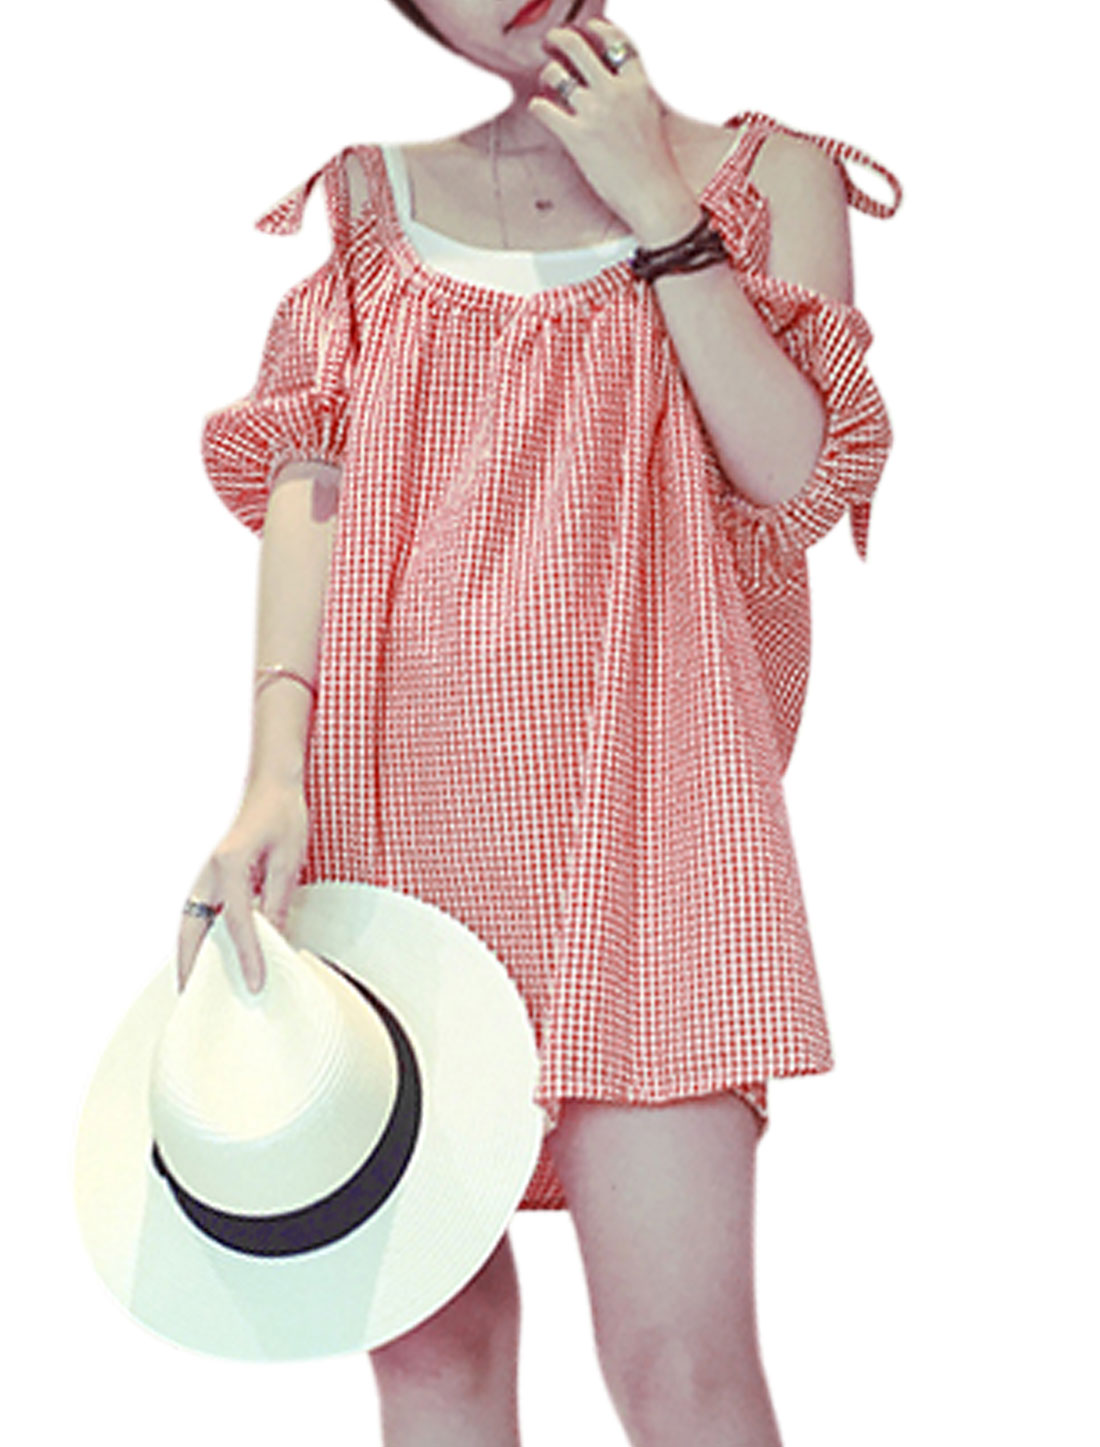 Woman Plaids Self Tie Cut Out Shoulder Textured Unlined Dress Pink White XS